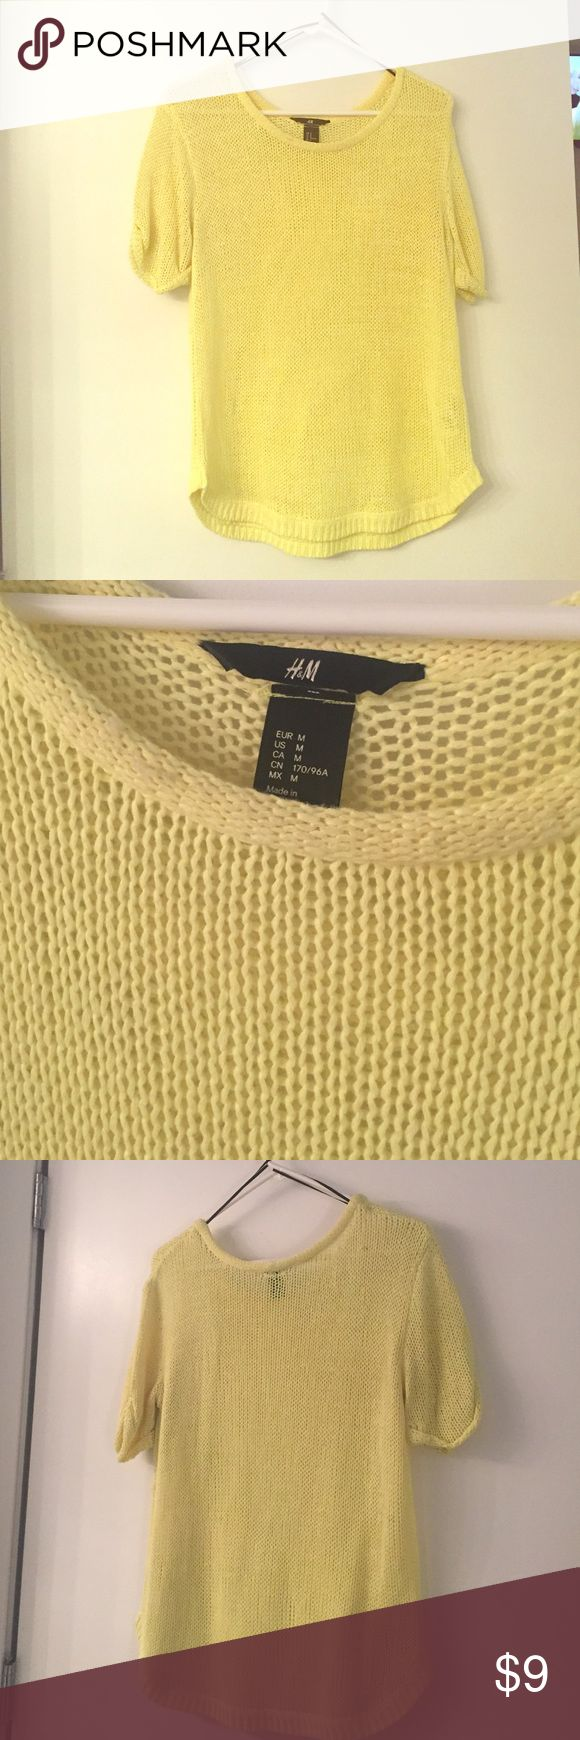 H&M mesh neon yellow top. H&M mesh neon yellow top. Size: M. Woven acrylic. H&M Tops